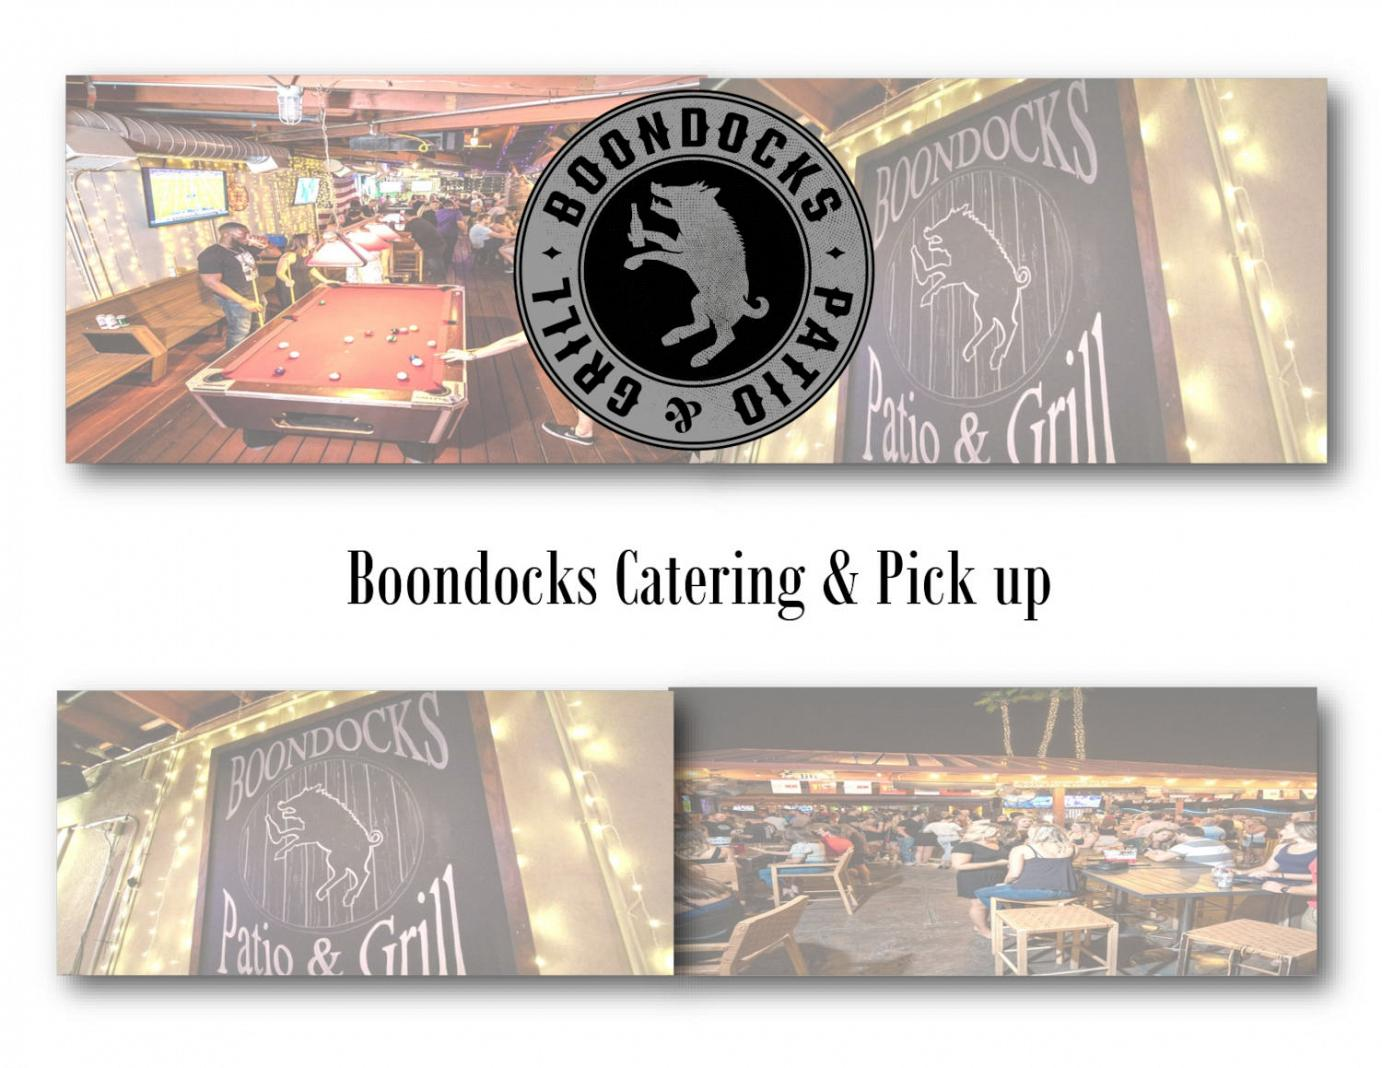 Boondocks Catering & Pick up